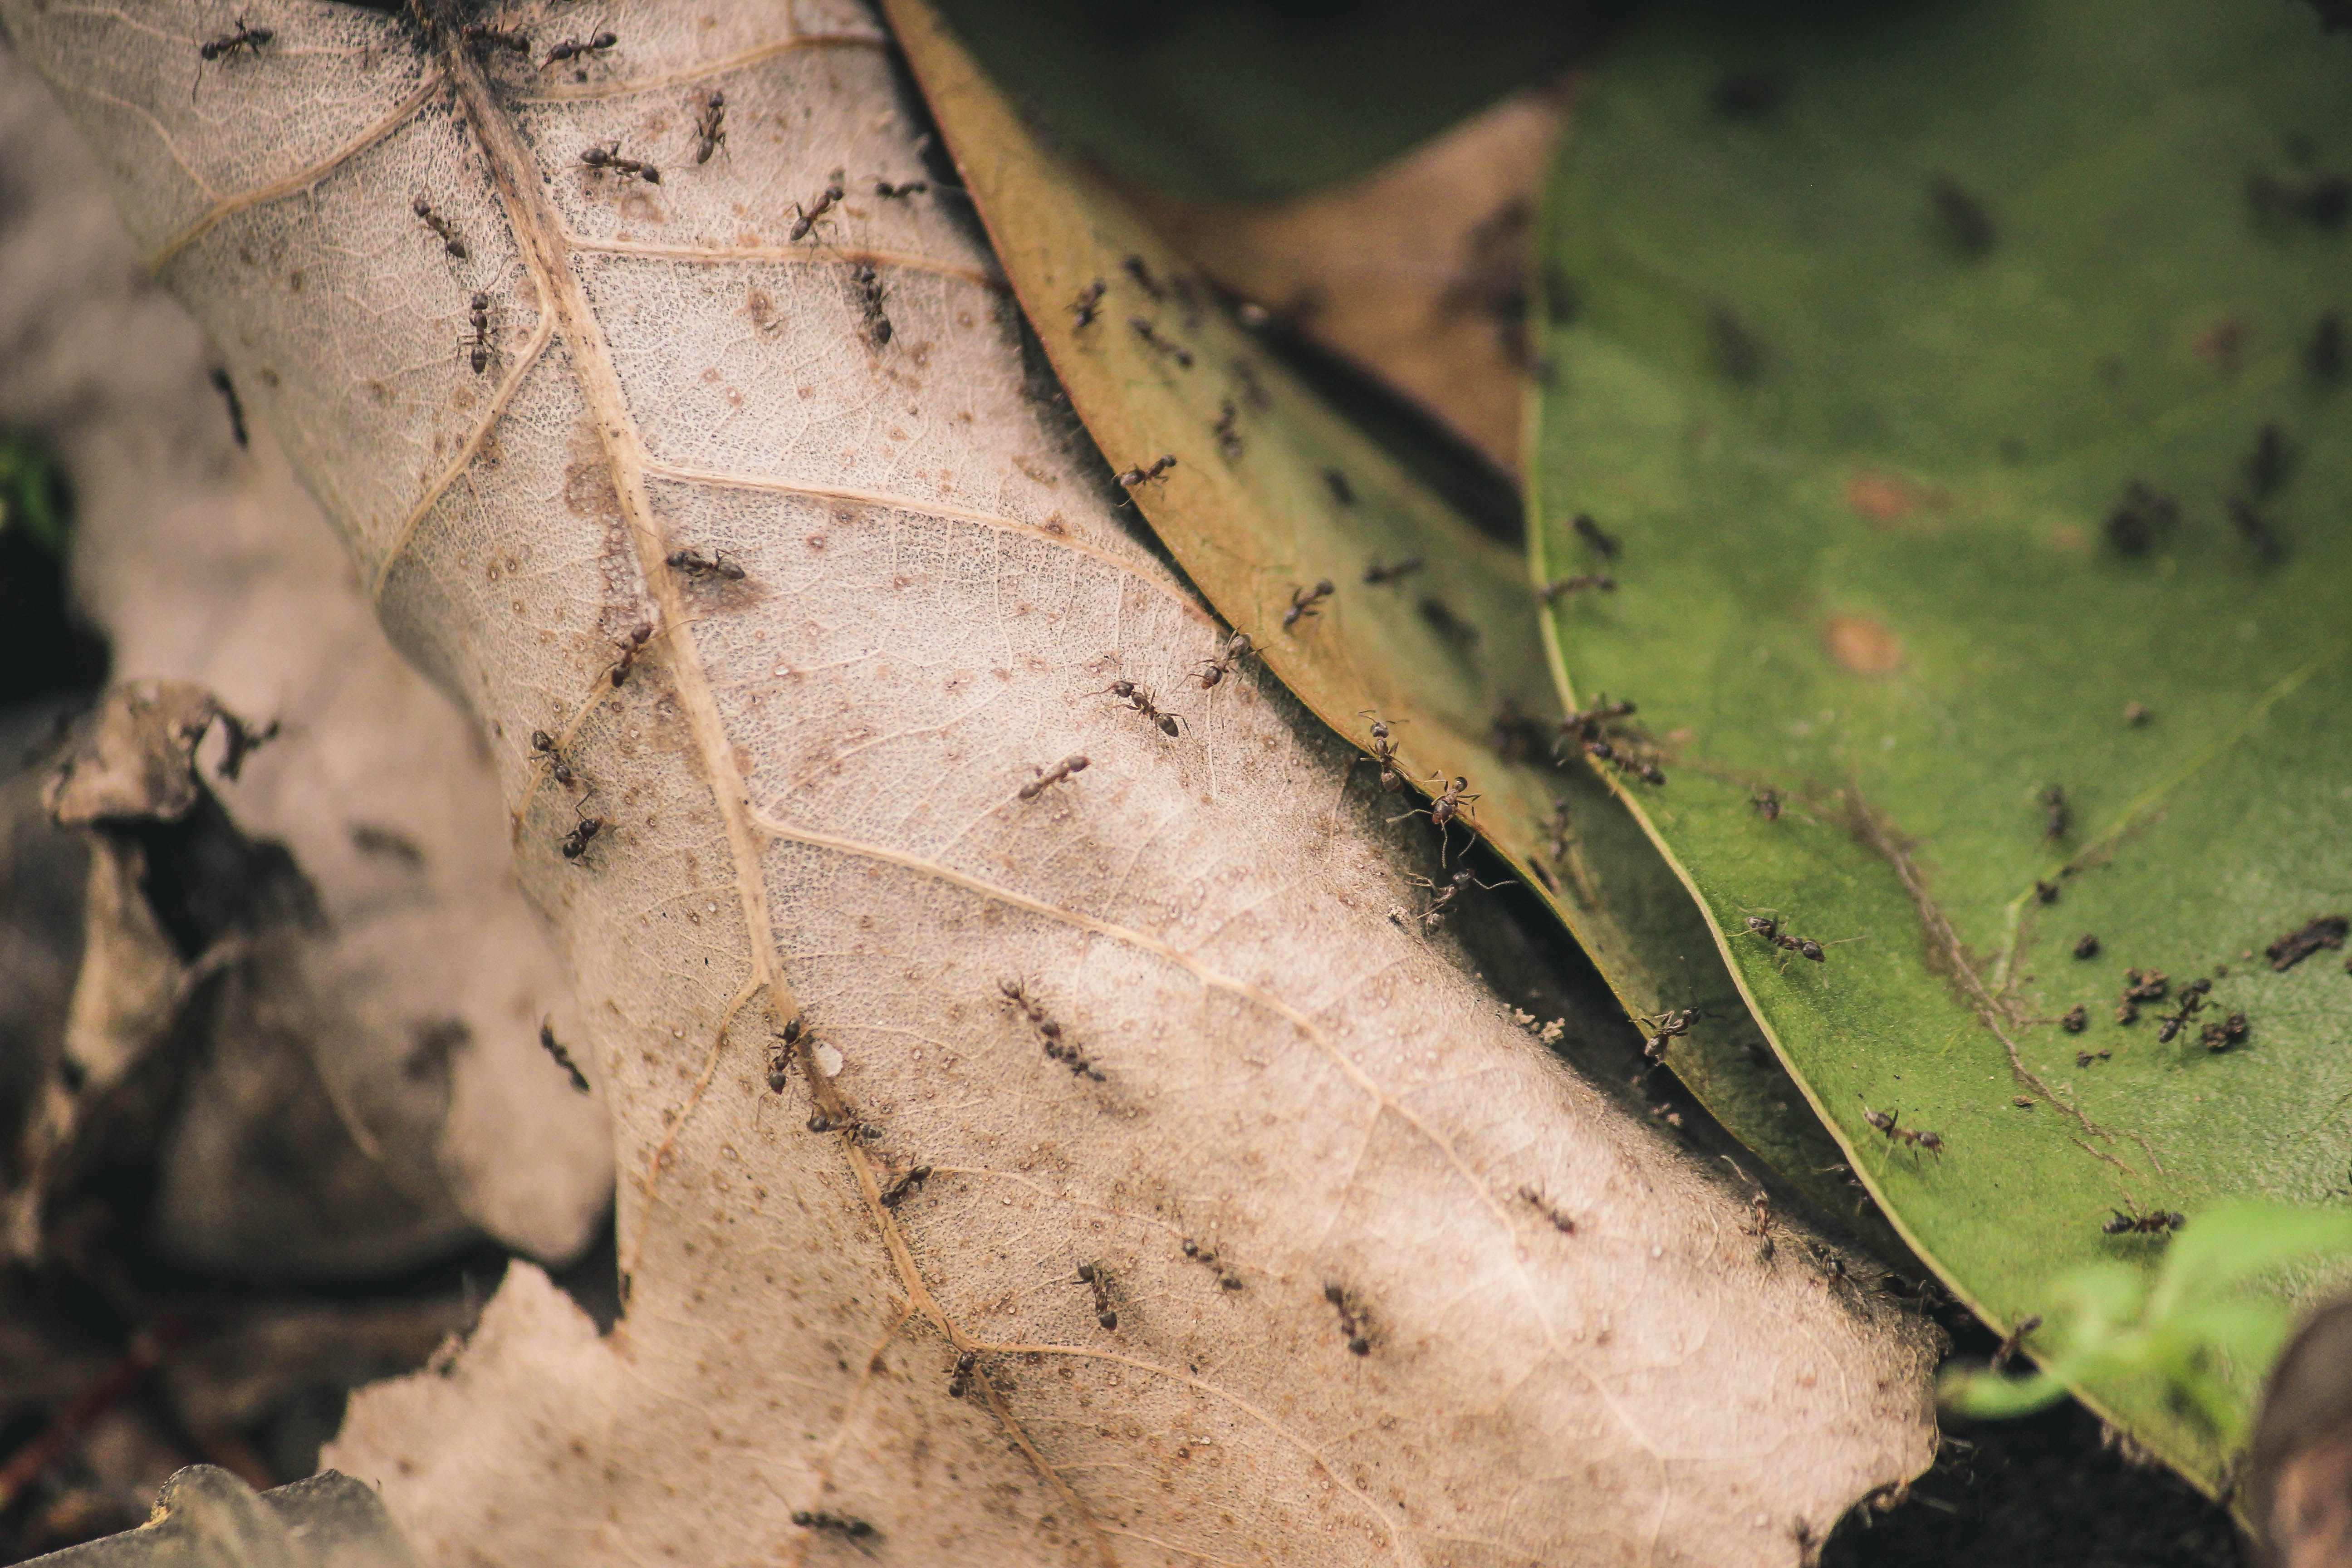 Ants on Brown and Green Leaves